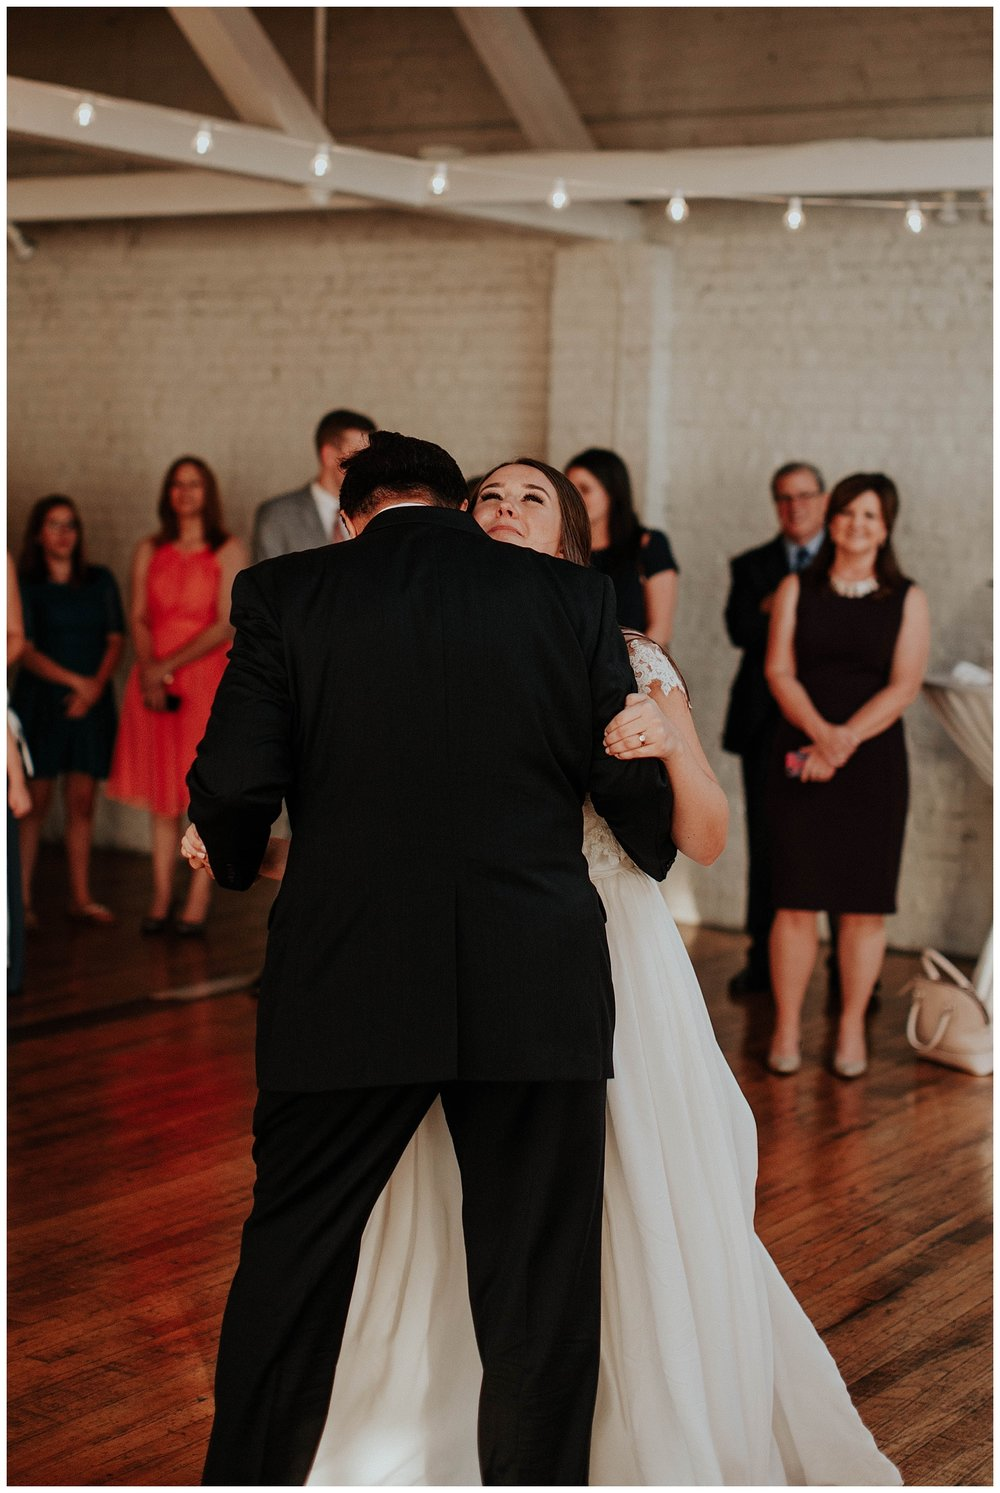 Madalynn Young Photography | Sarah Catherine + Will | Bridge Street Gallery and Loft | Atlanta Wedding Photographer_0405.jpg